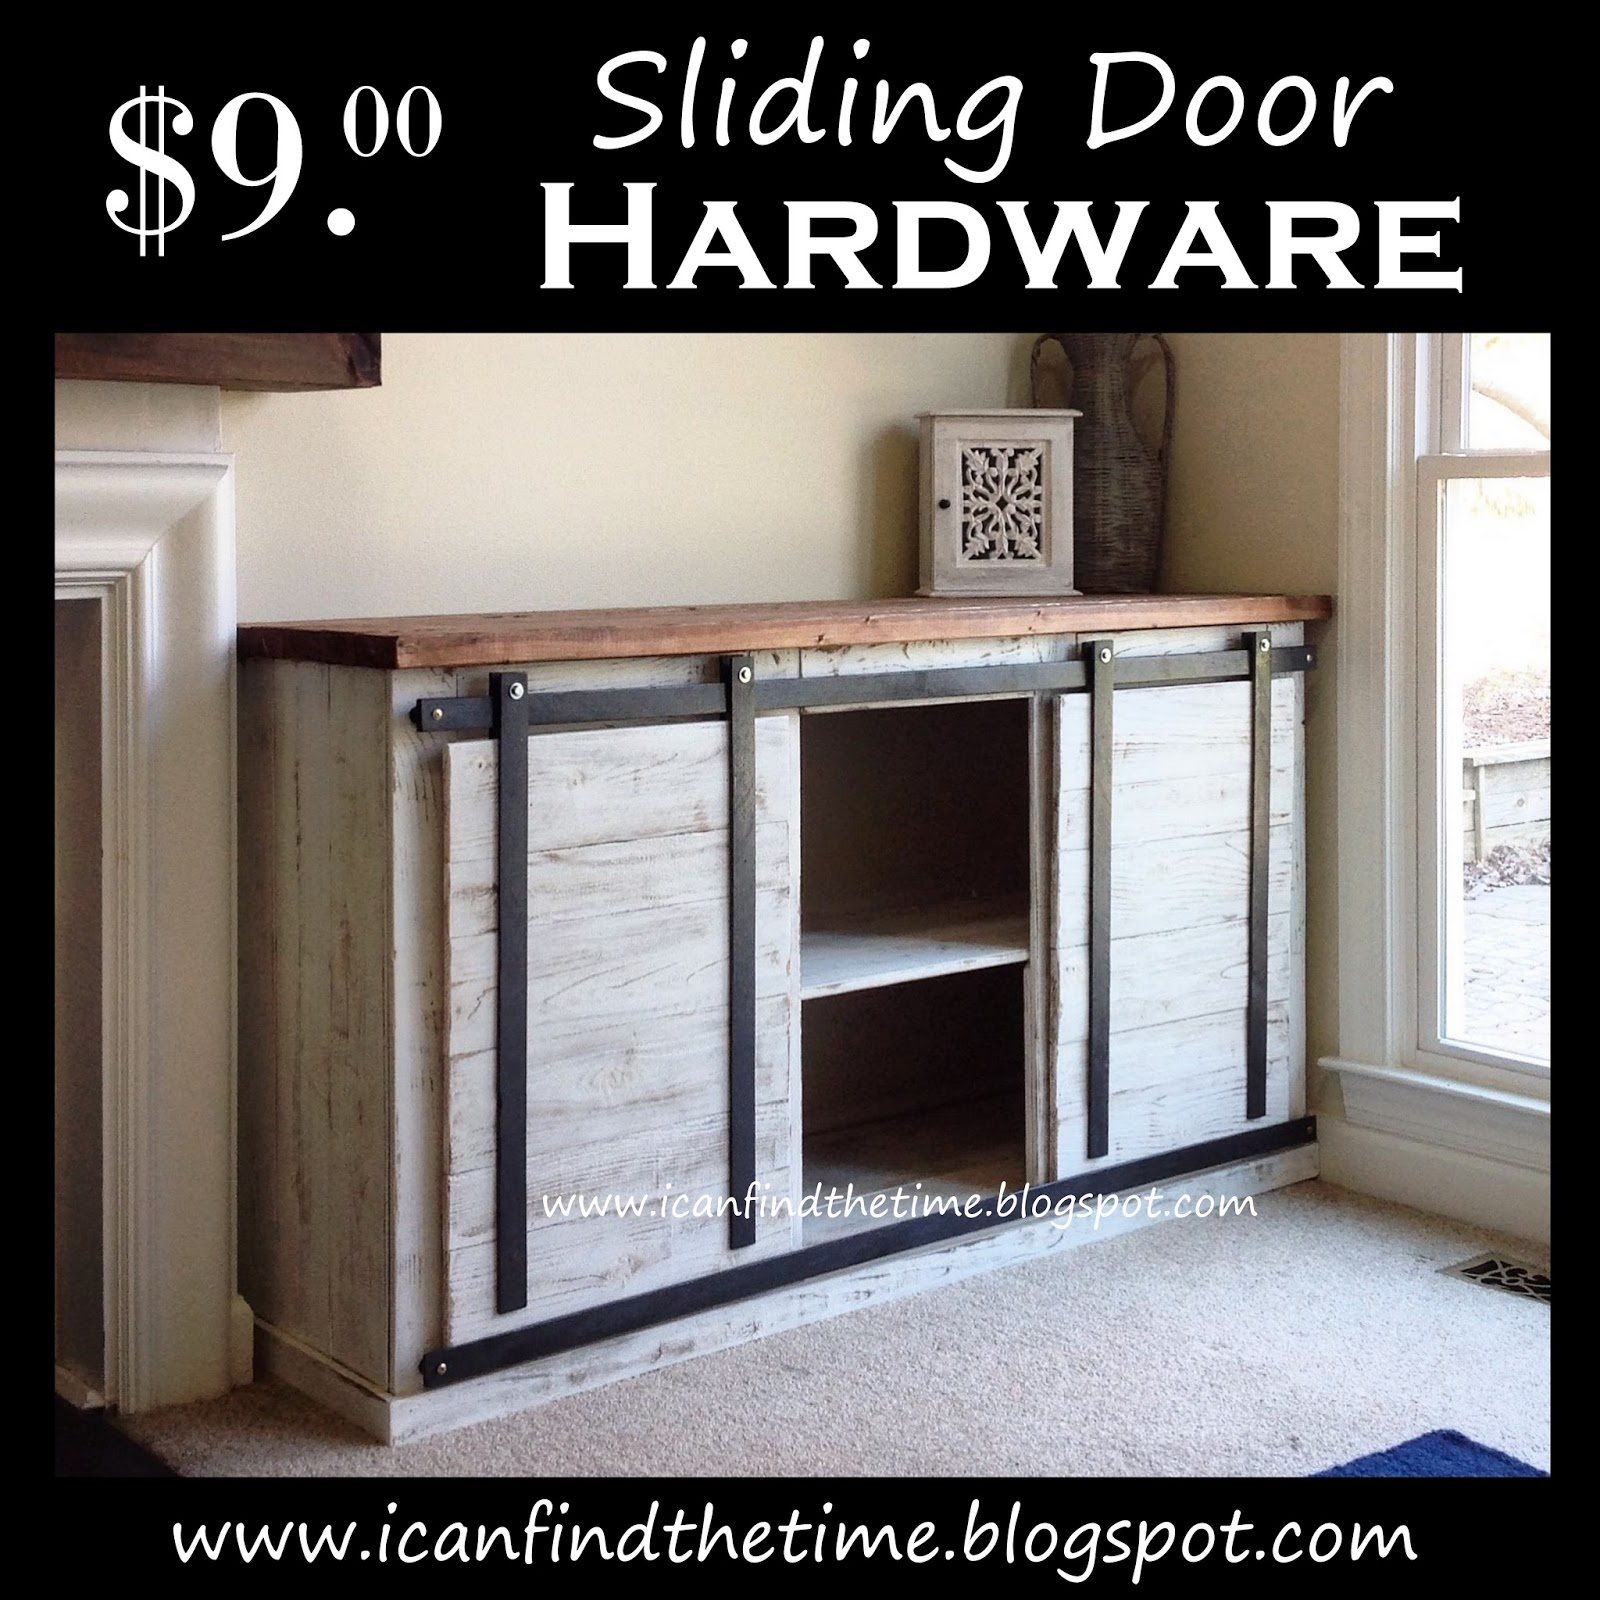 A New Cheaper Way To Do Sliding Doors On Furniture